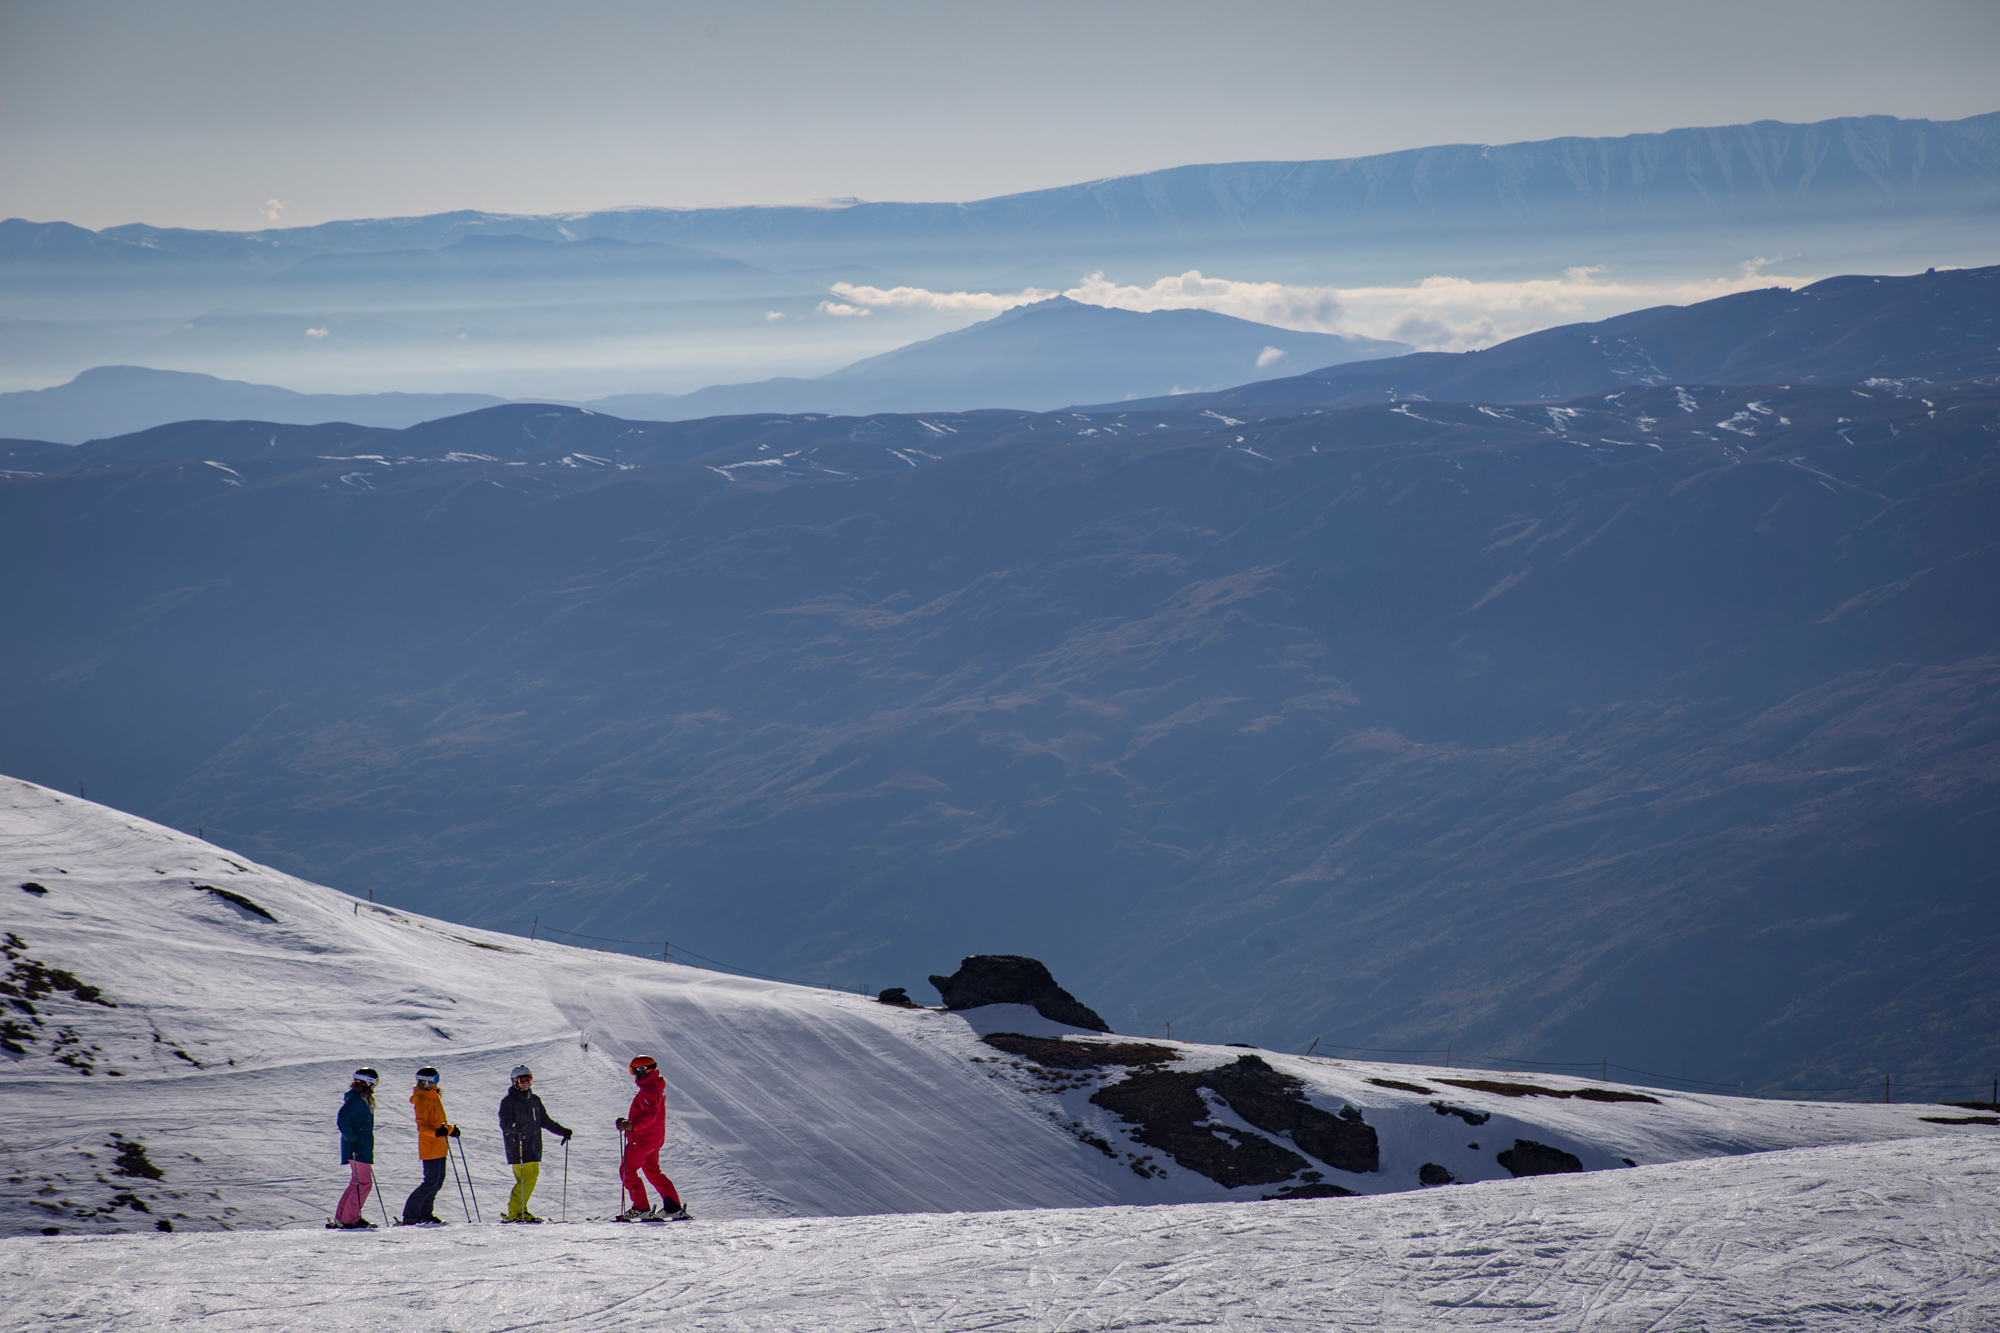 Cardrona-Queenstown skiing- ski snowboard lessons